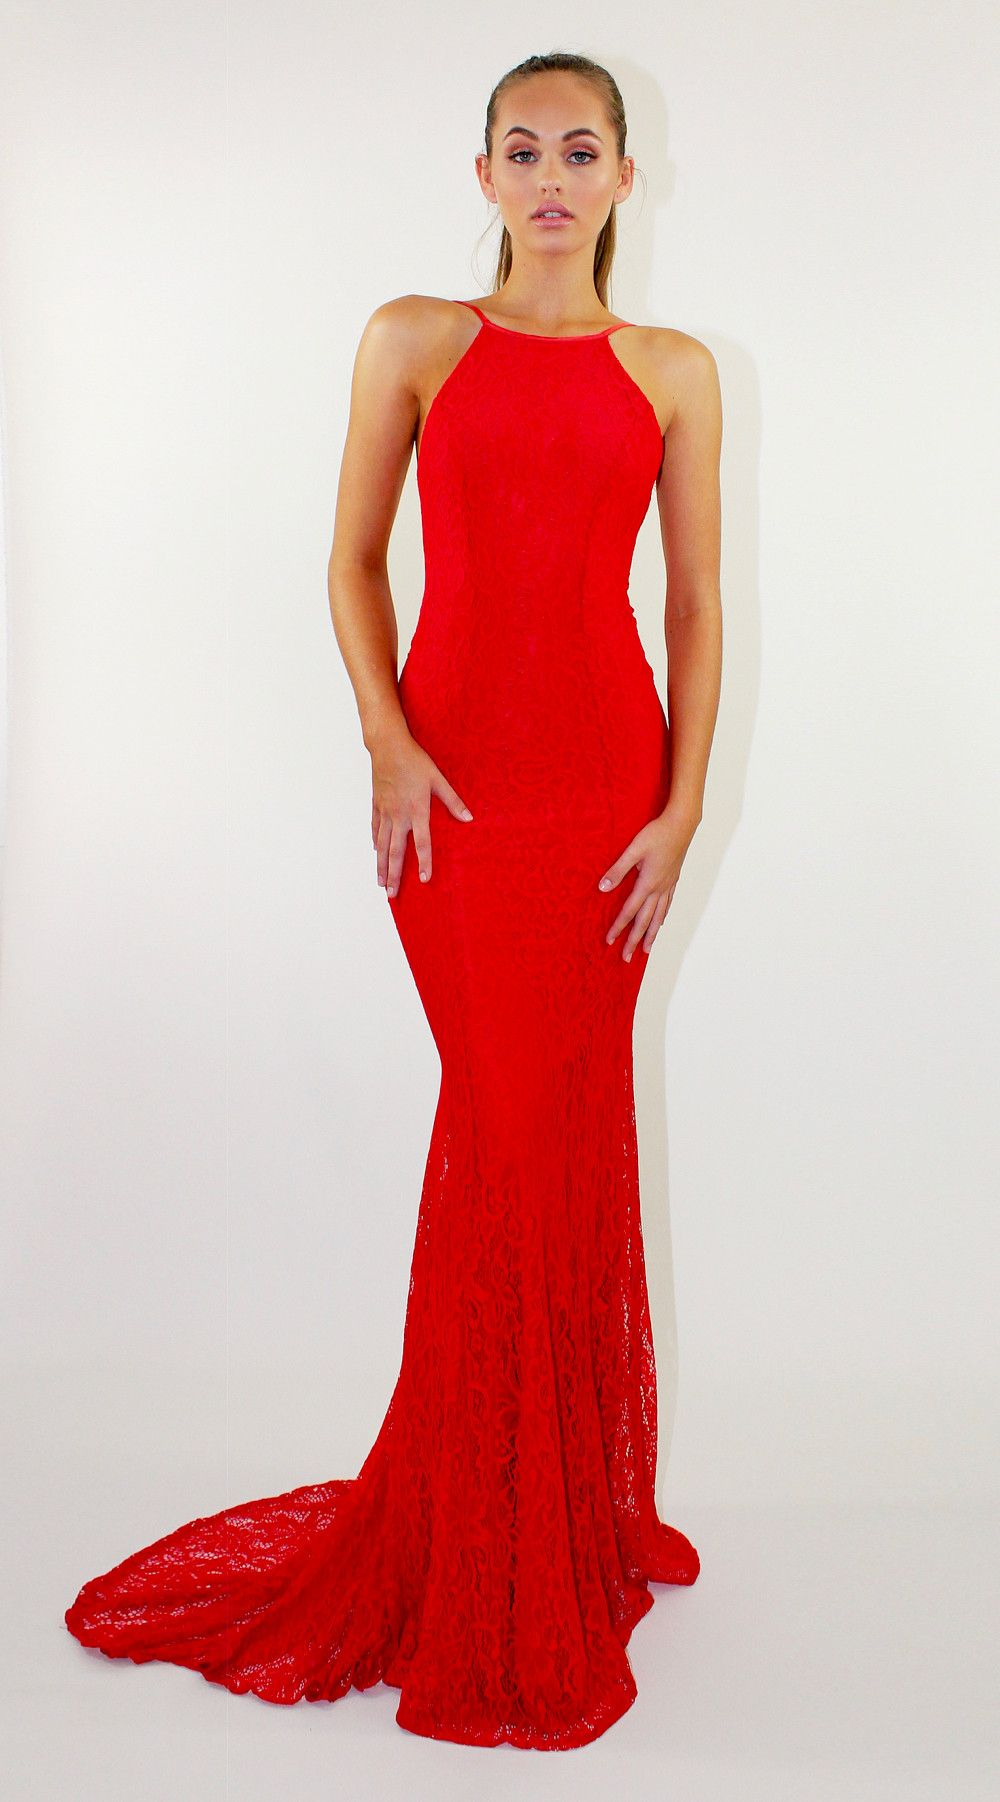 Reckless Red | Backless formal dress, Prom and Red formal dresses